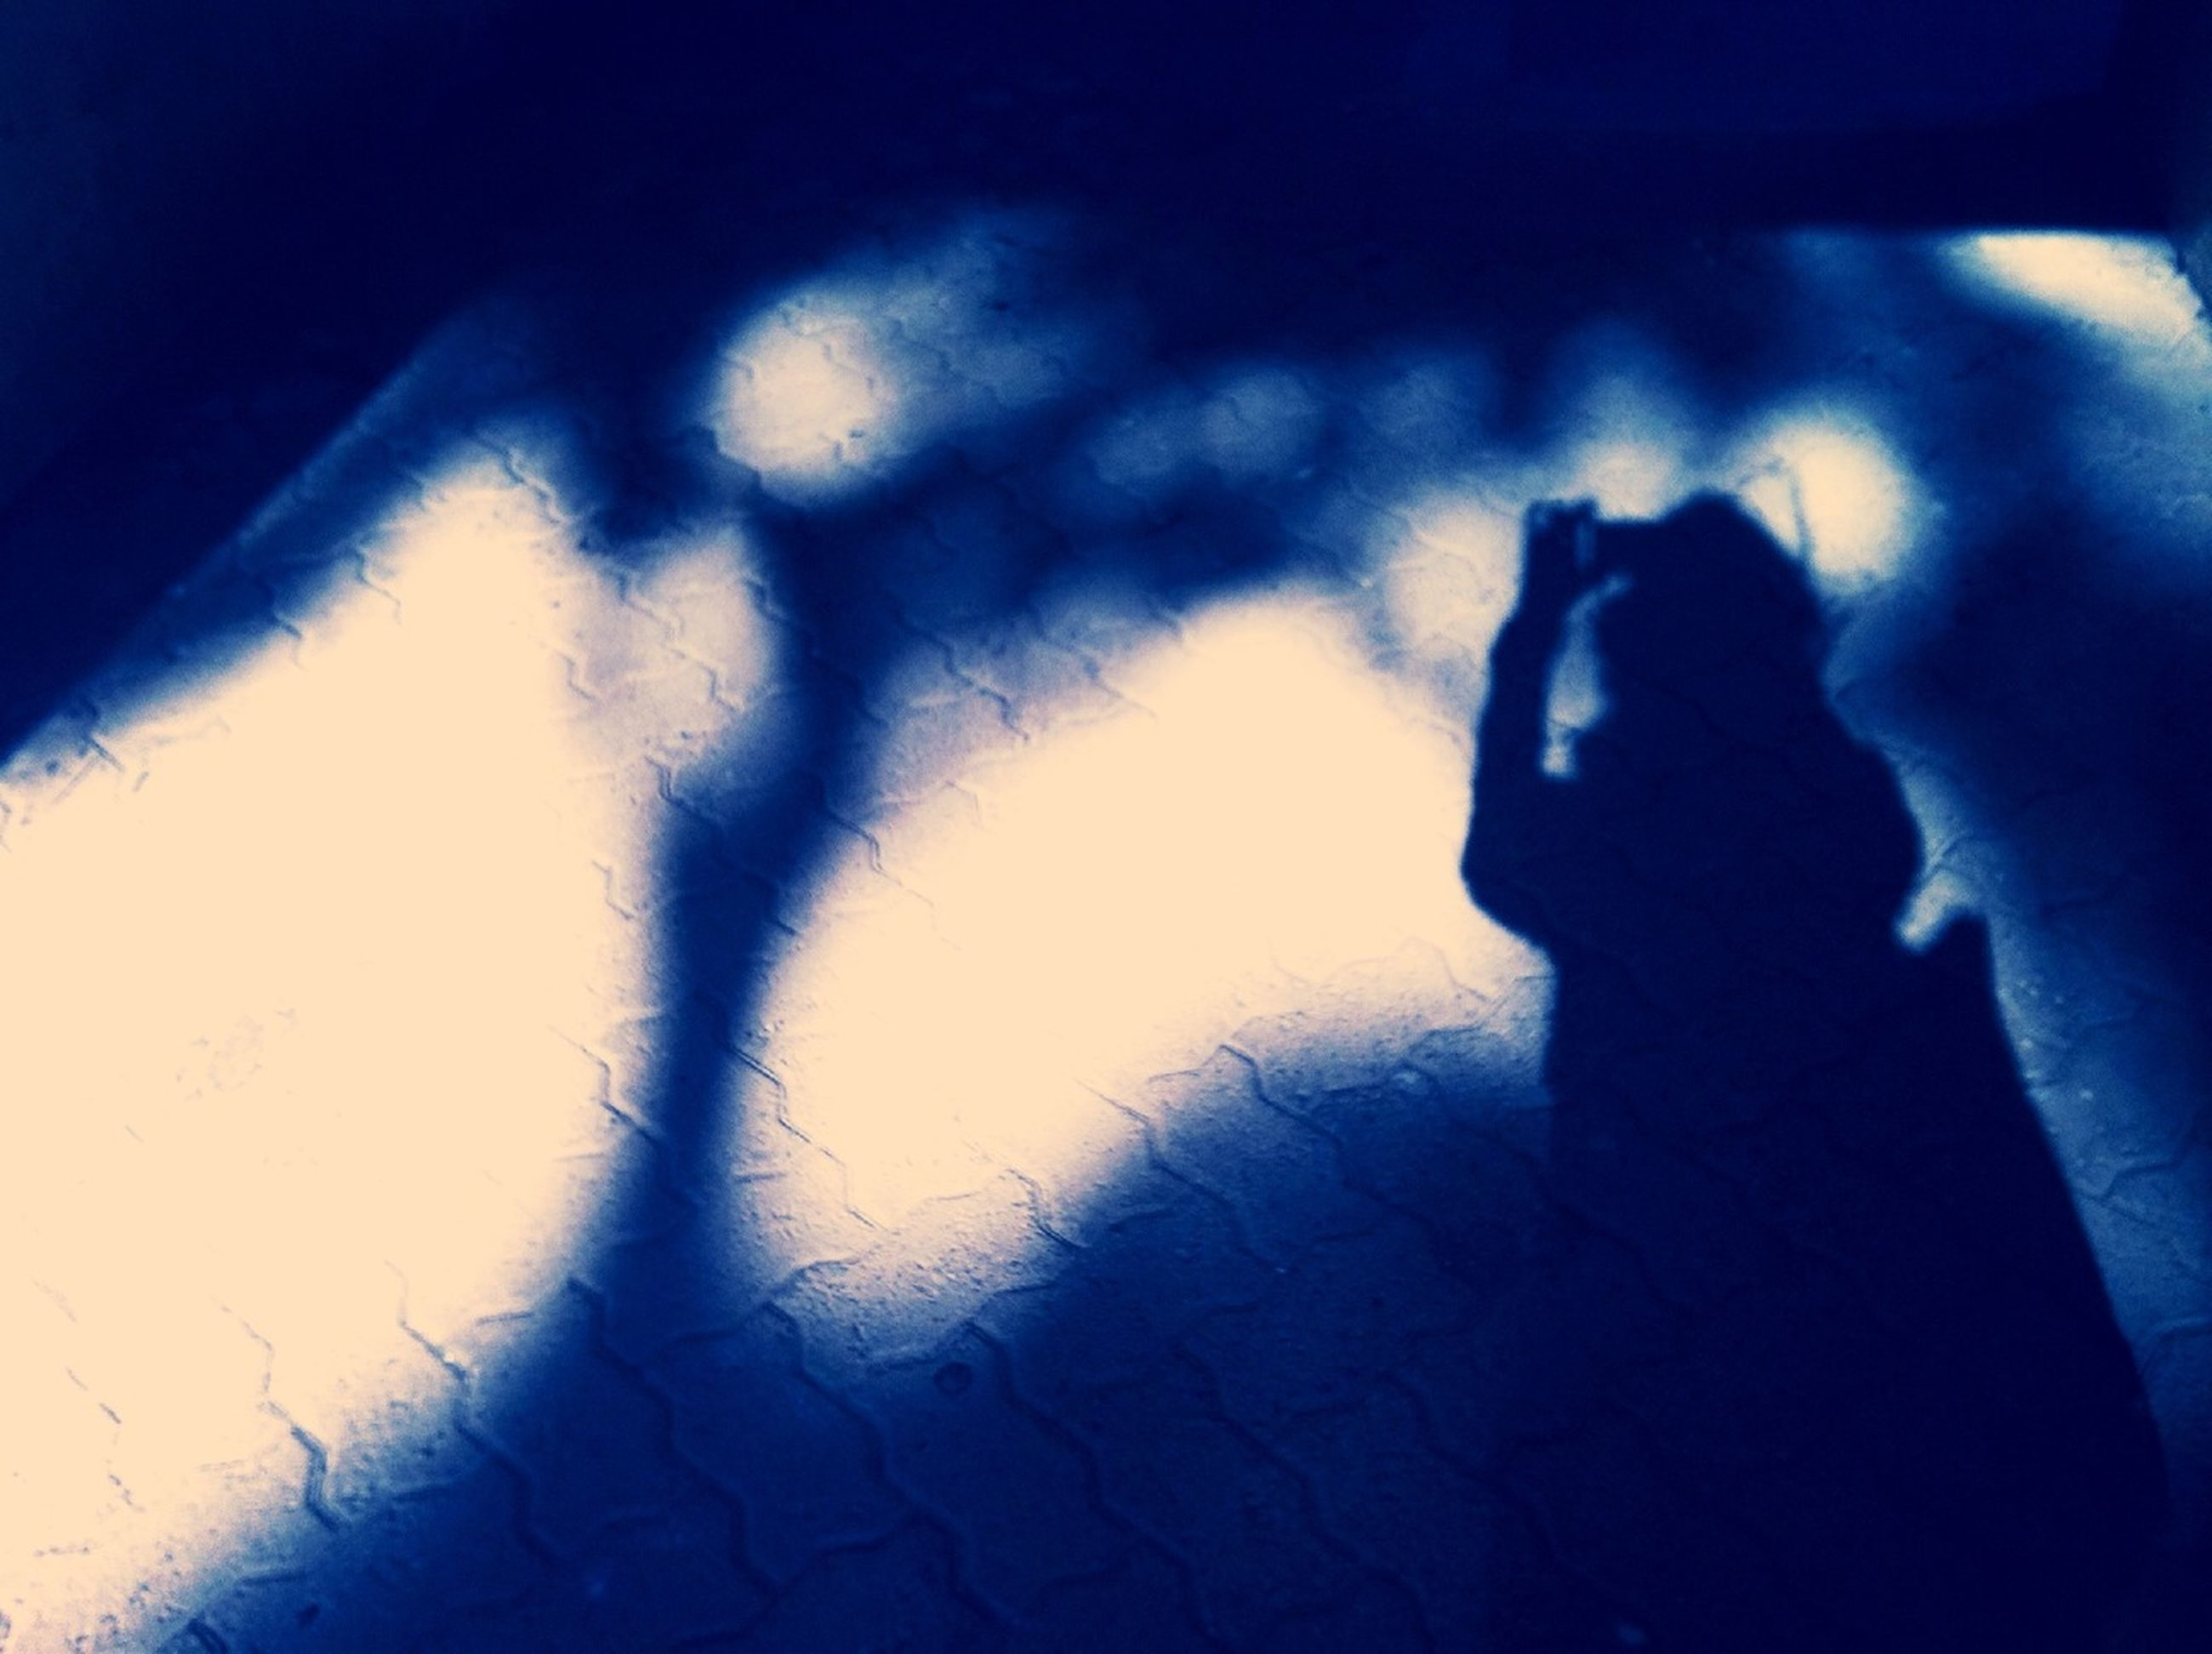 shadow, silhouette, indoors, sunlight, focus on shadow, unrecognizable person, wall - building feature, dark, lifestyles, high angle view, outline, men, part of, day, leisure activity, low section, home interior, close-up